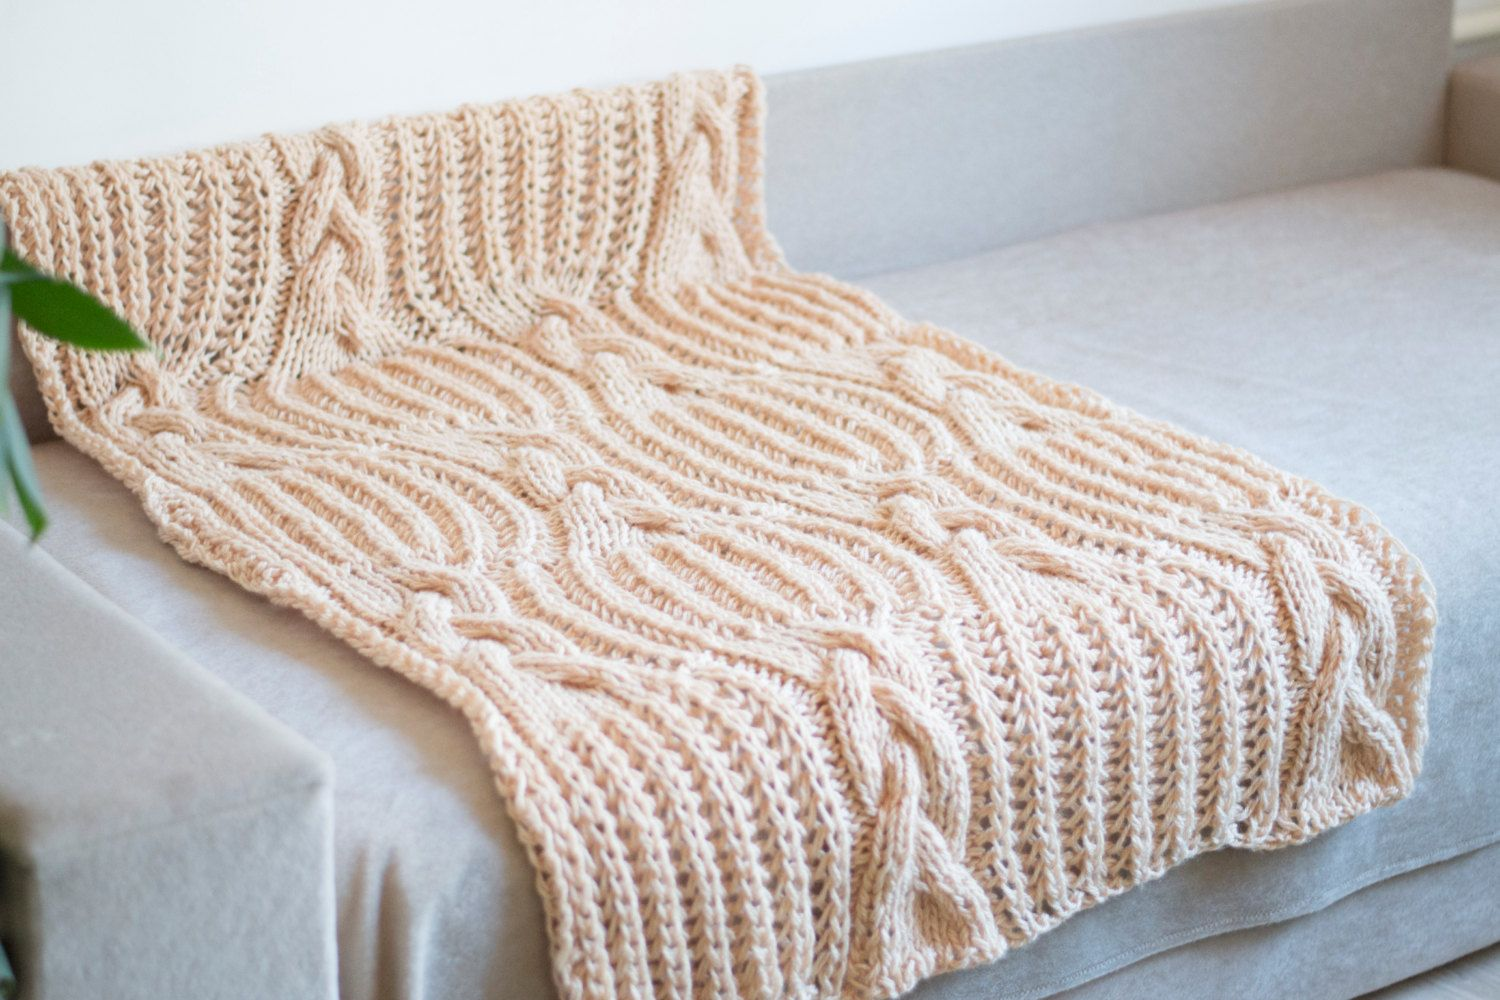 Beige knit baby blanket knitted blanket baby shower gift hand knitted blanket wool throw kids blanket kids warm blanket onward onward